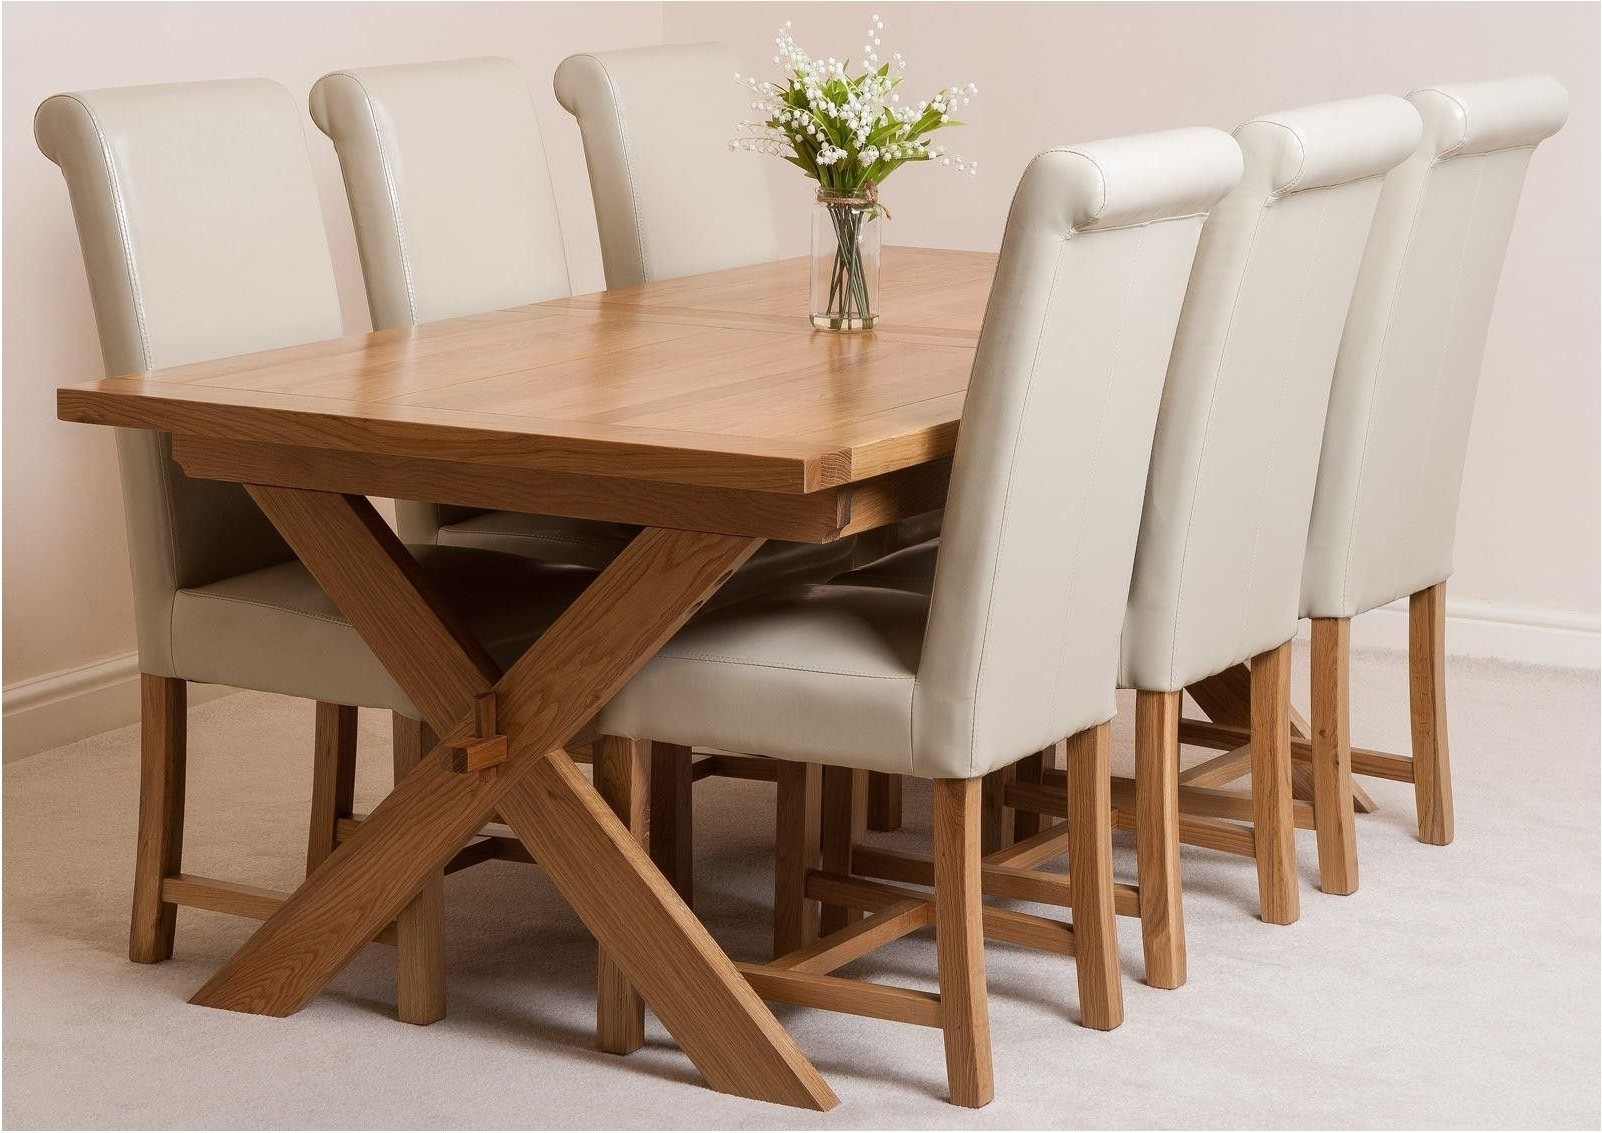 Widely Used Extending Dining Tables And Chairs Regarding Breathtaking Vermont Extending Oak Dining Table With 6 Black Lola (View 10 of 25)